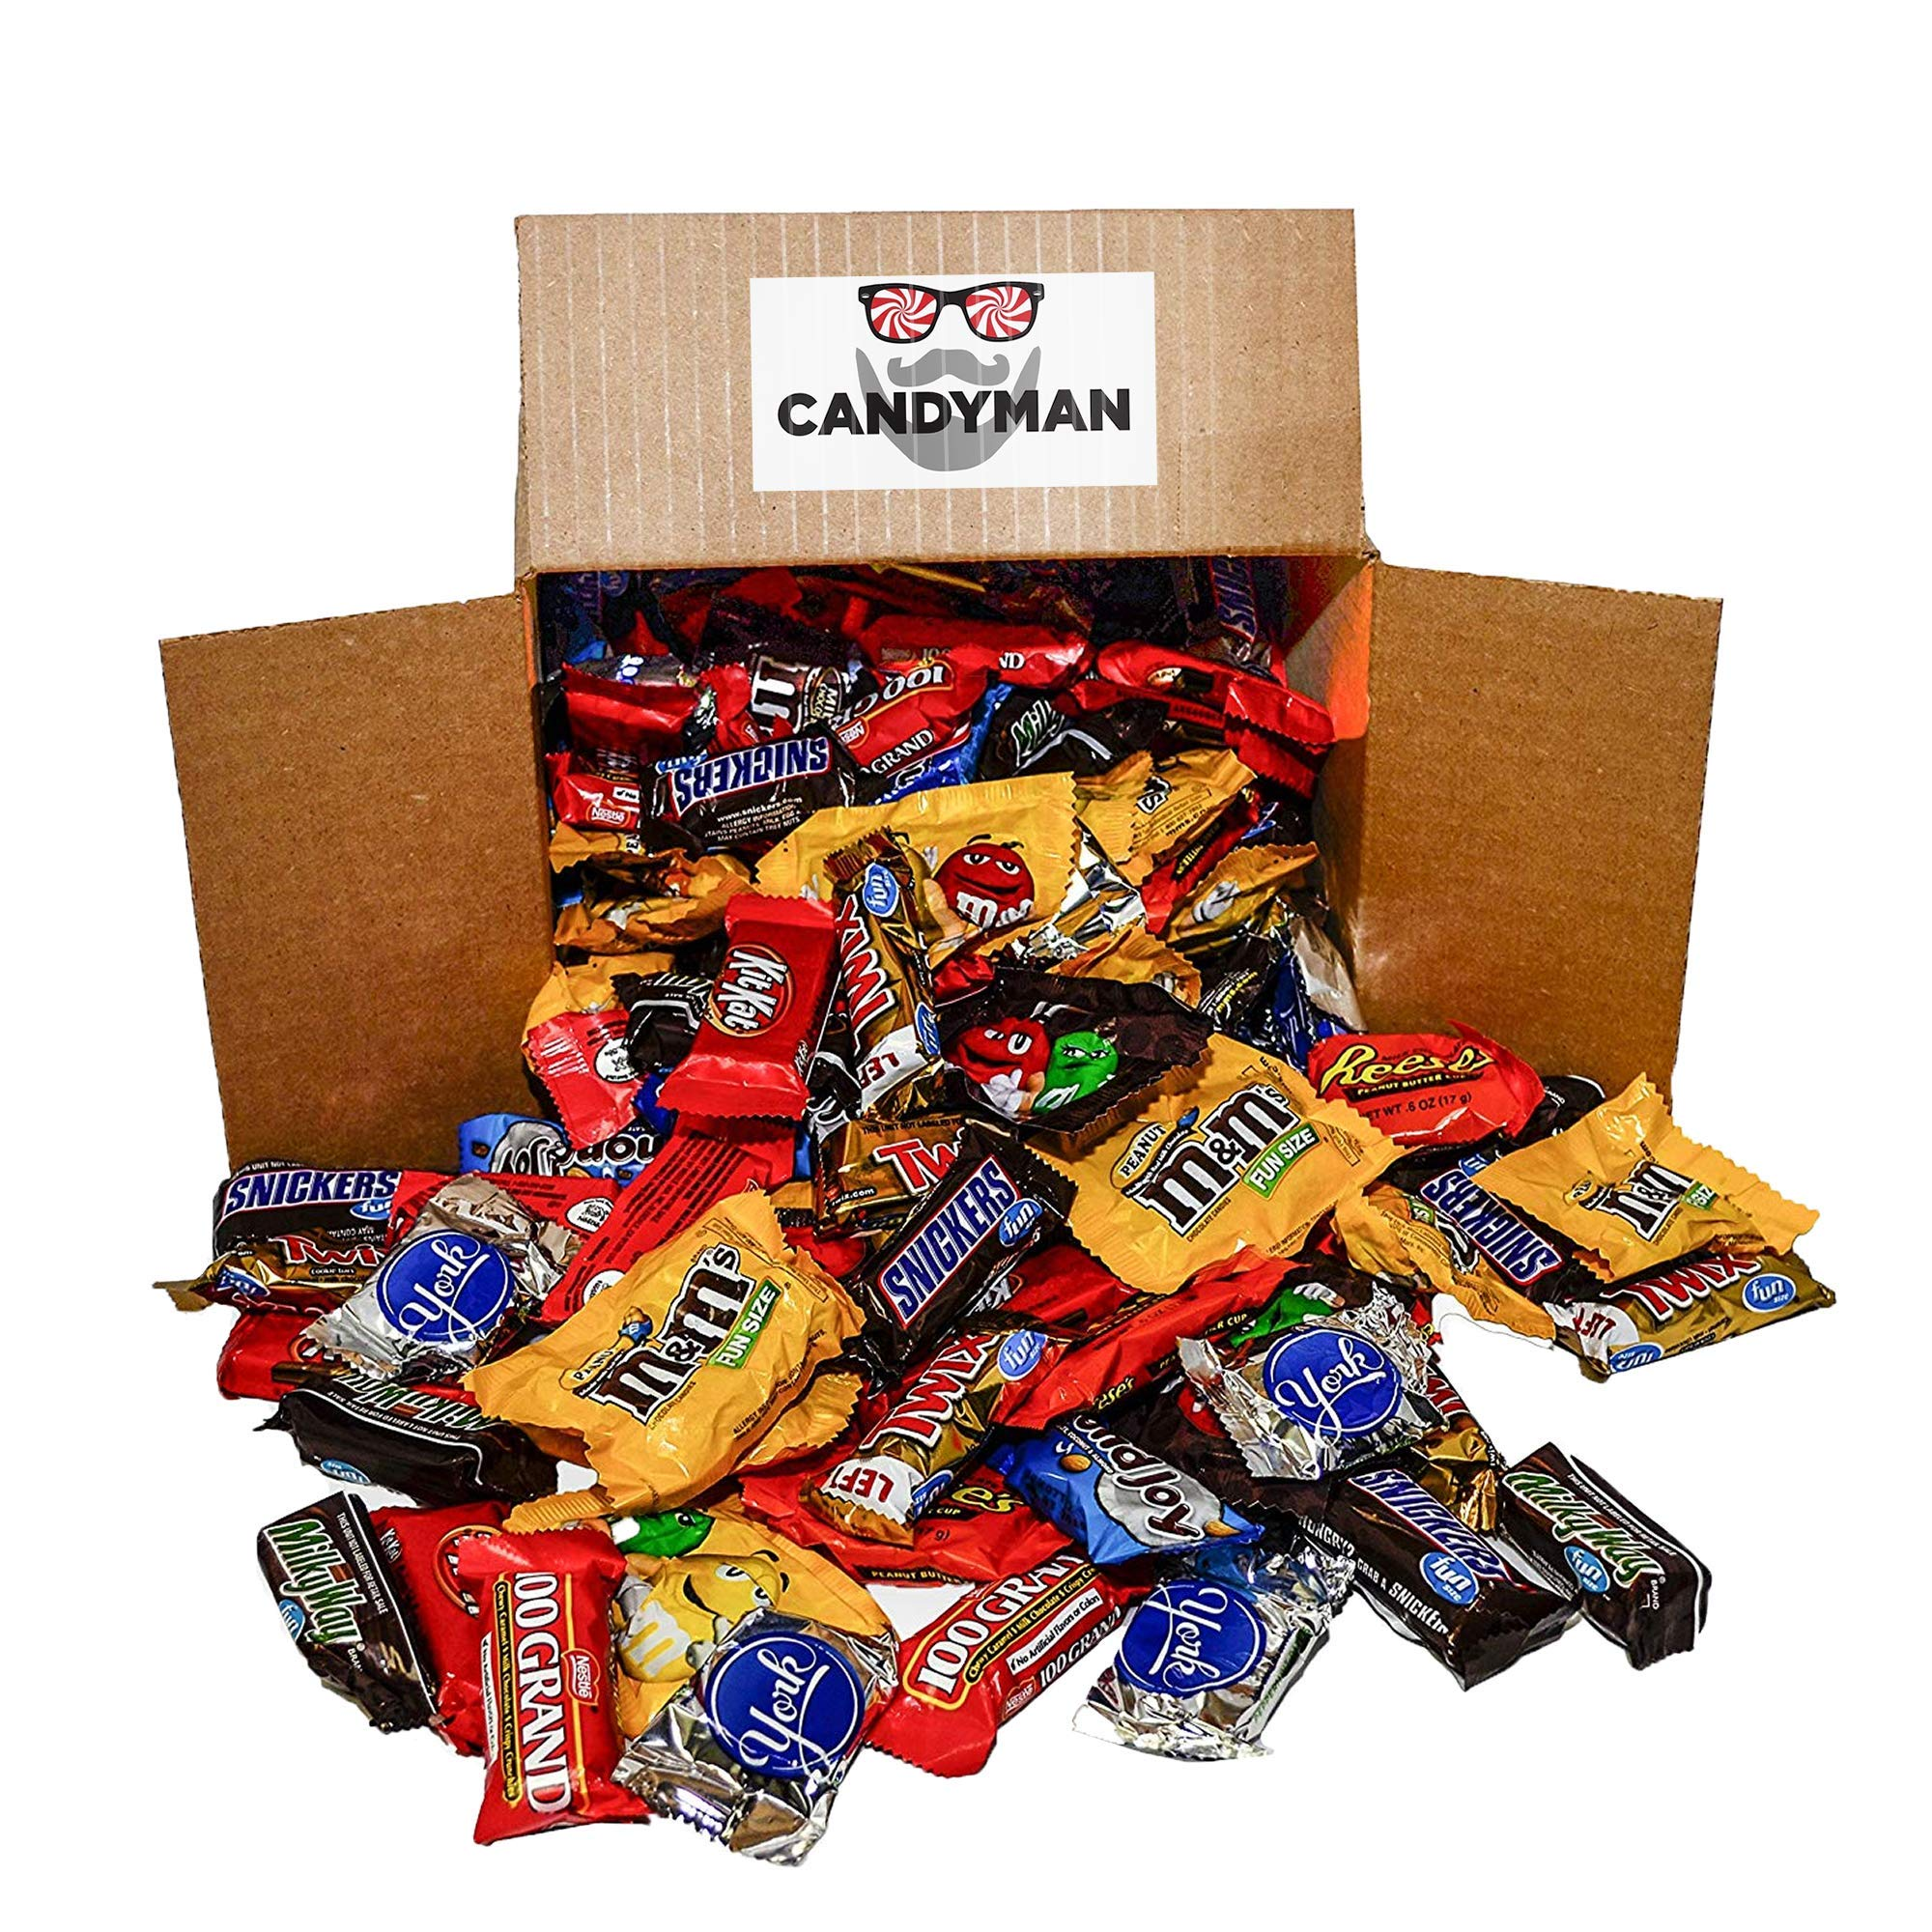 Chocolate Candy 150 pieces (5.6 lbs) Variety Pack Hersheys Nestles Reese's Snickers York Peppermint Almond Joy Kit Kat, M&Ms Peanut and Milk Chocolate, 100 Grand Bars, Milky Way by CANDYMAN